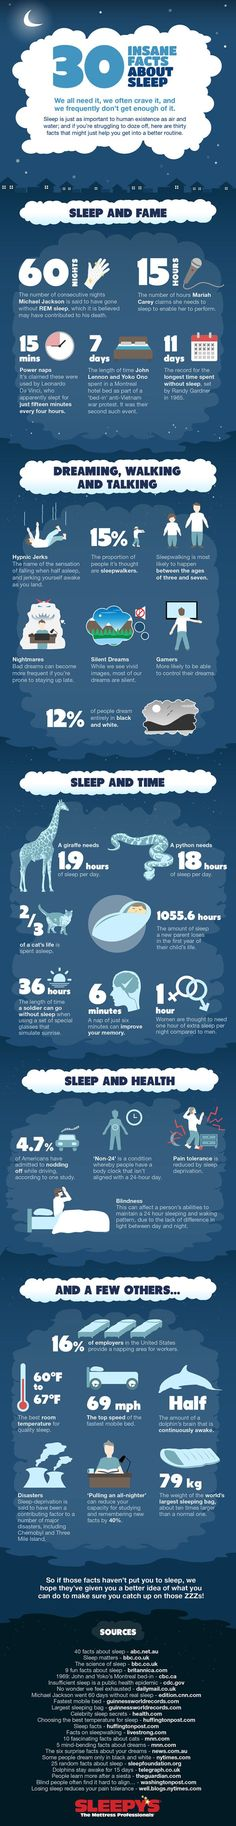 30 Facts You Didn't Know About Sleep,,facts_about_sleep_01